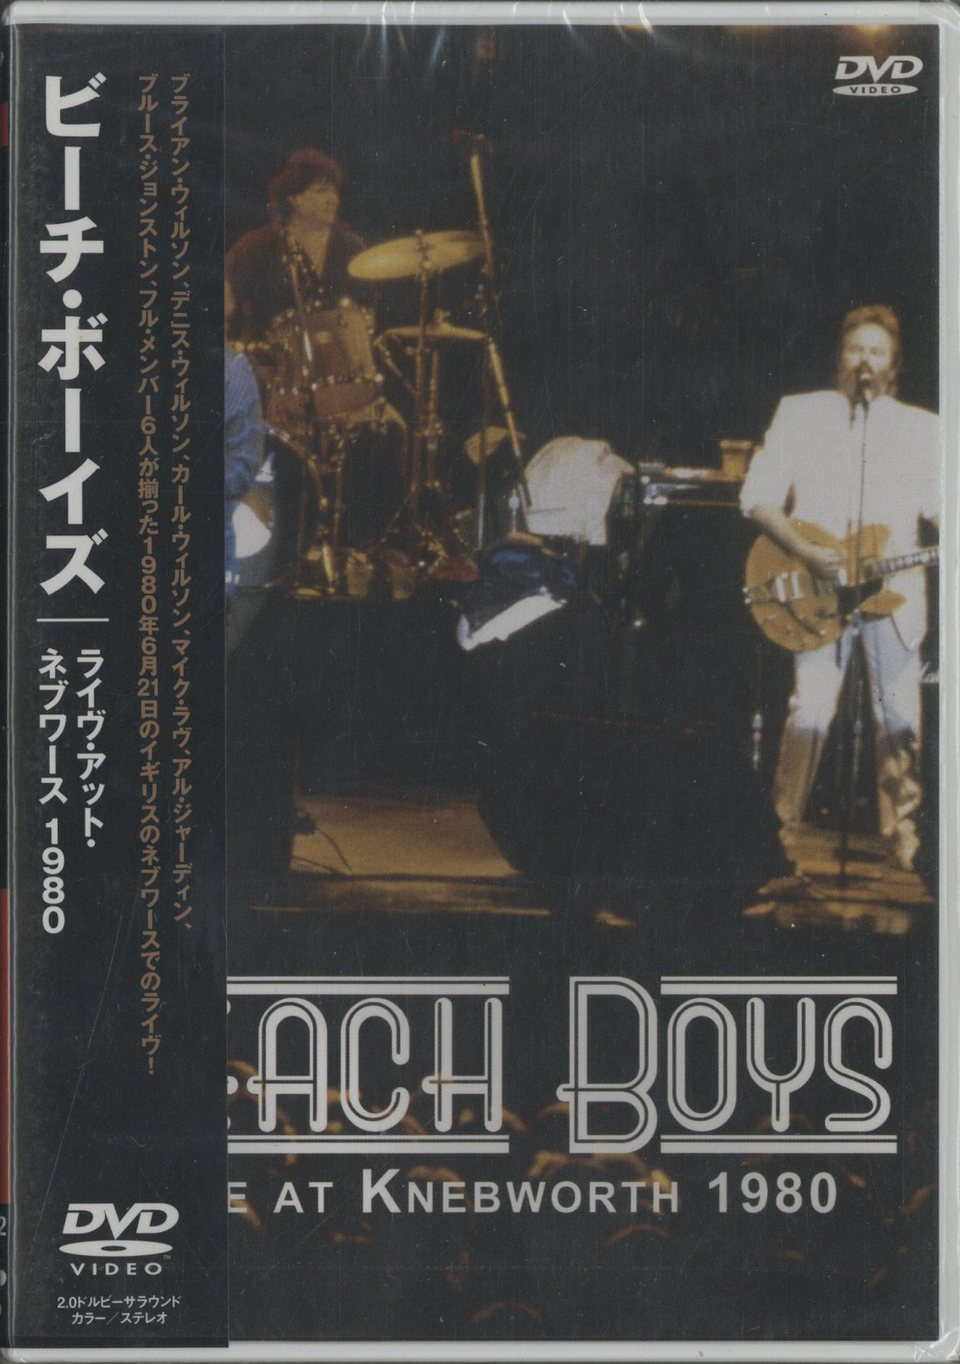 【未開封】LIVE AT KNEBWORTH 1980/THE BEACH BOYS THE BEACH BOYS 画像